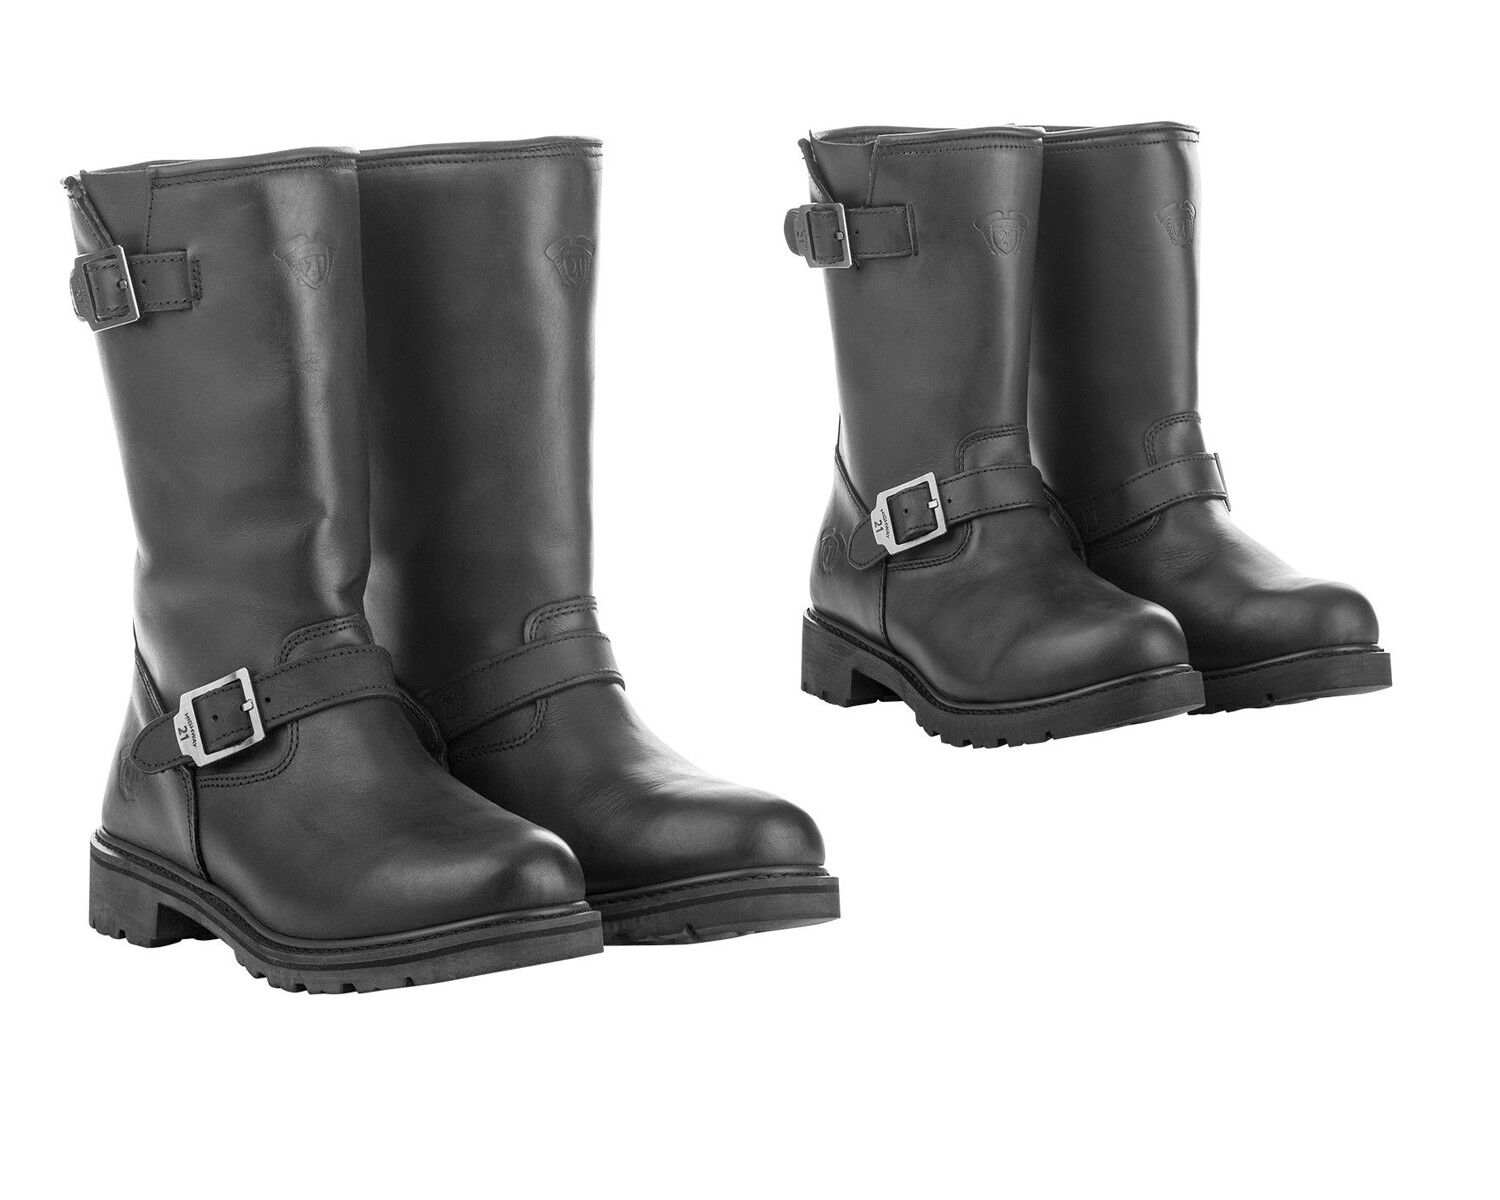 Highway 21 Primary Engineer Leather Mens Motorcycle Boots - Pick Size / Style